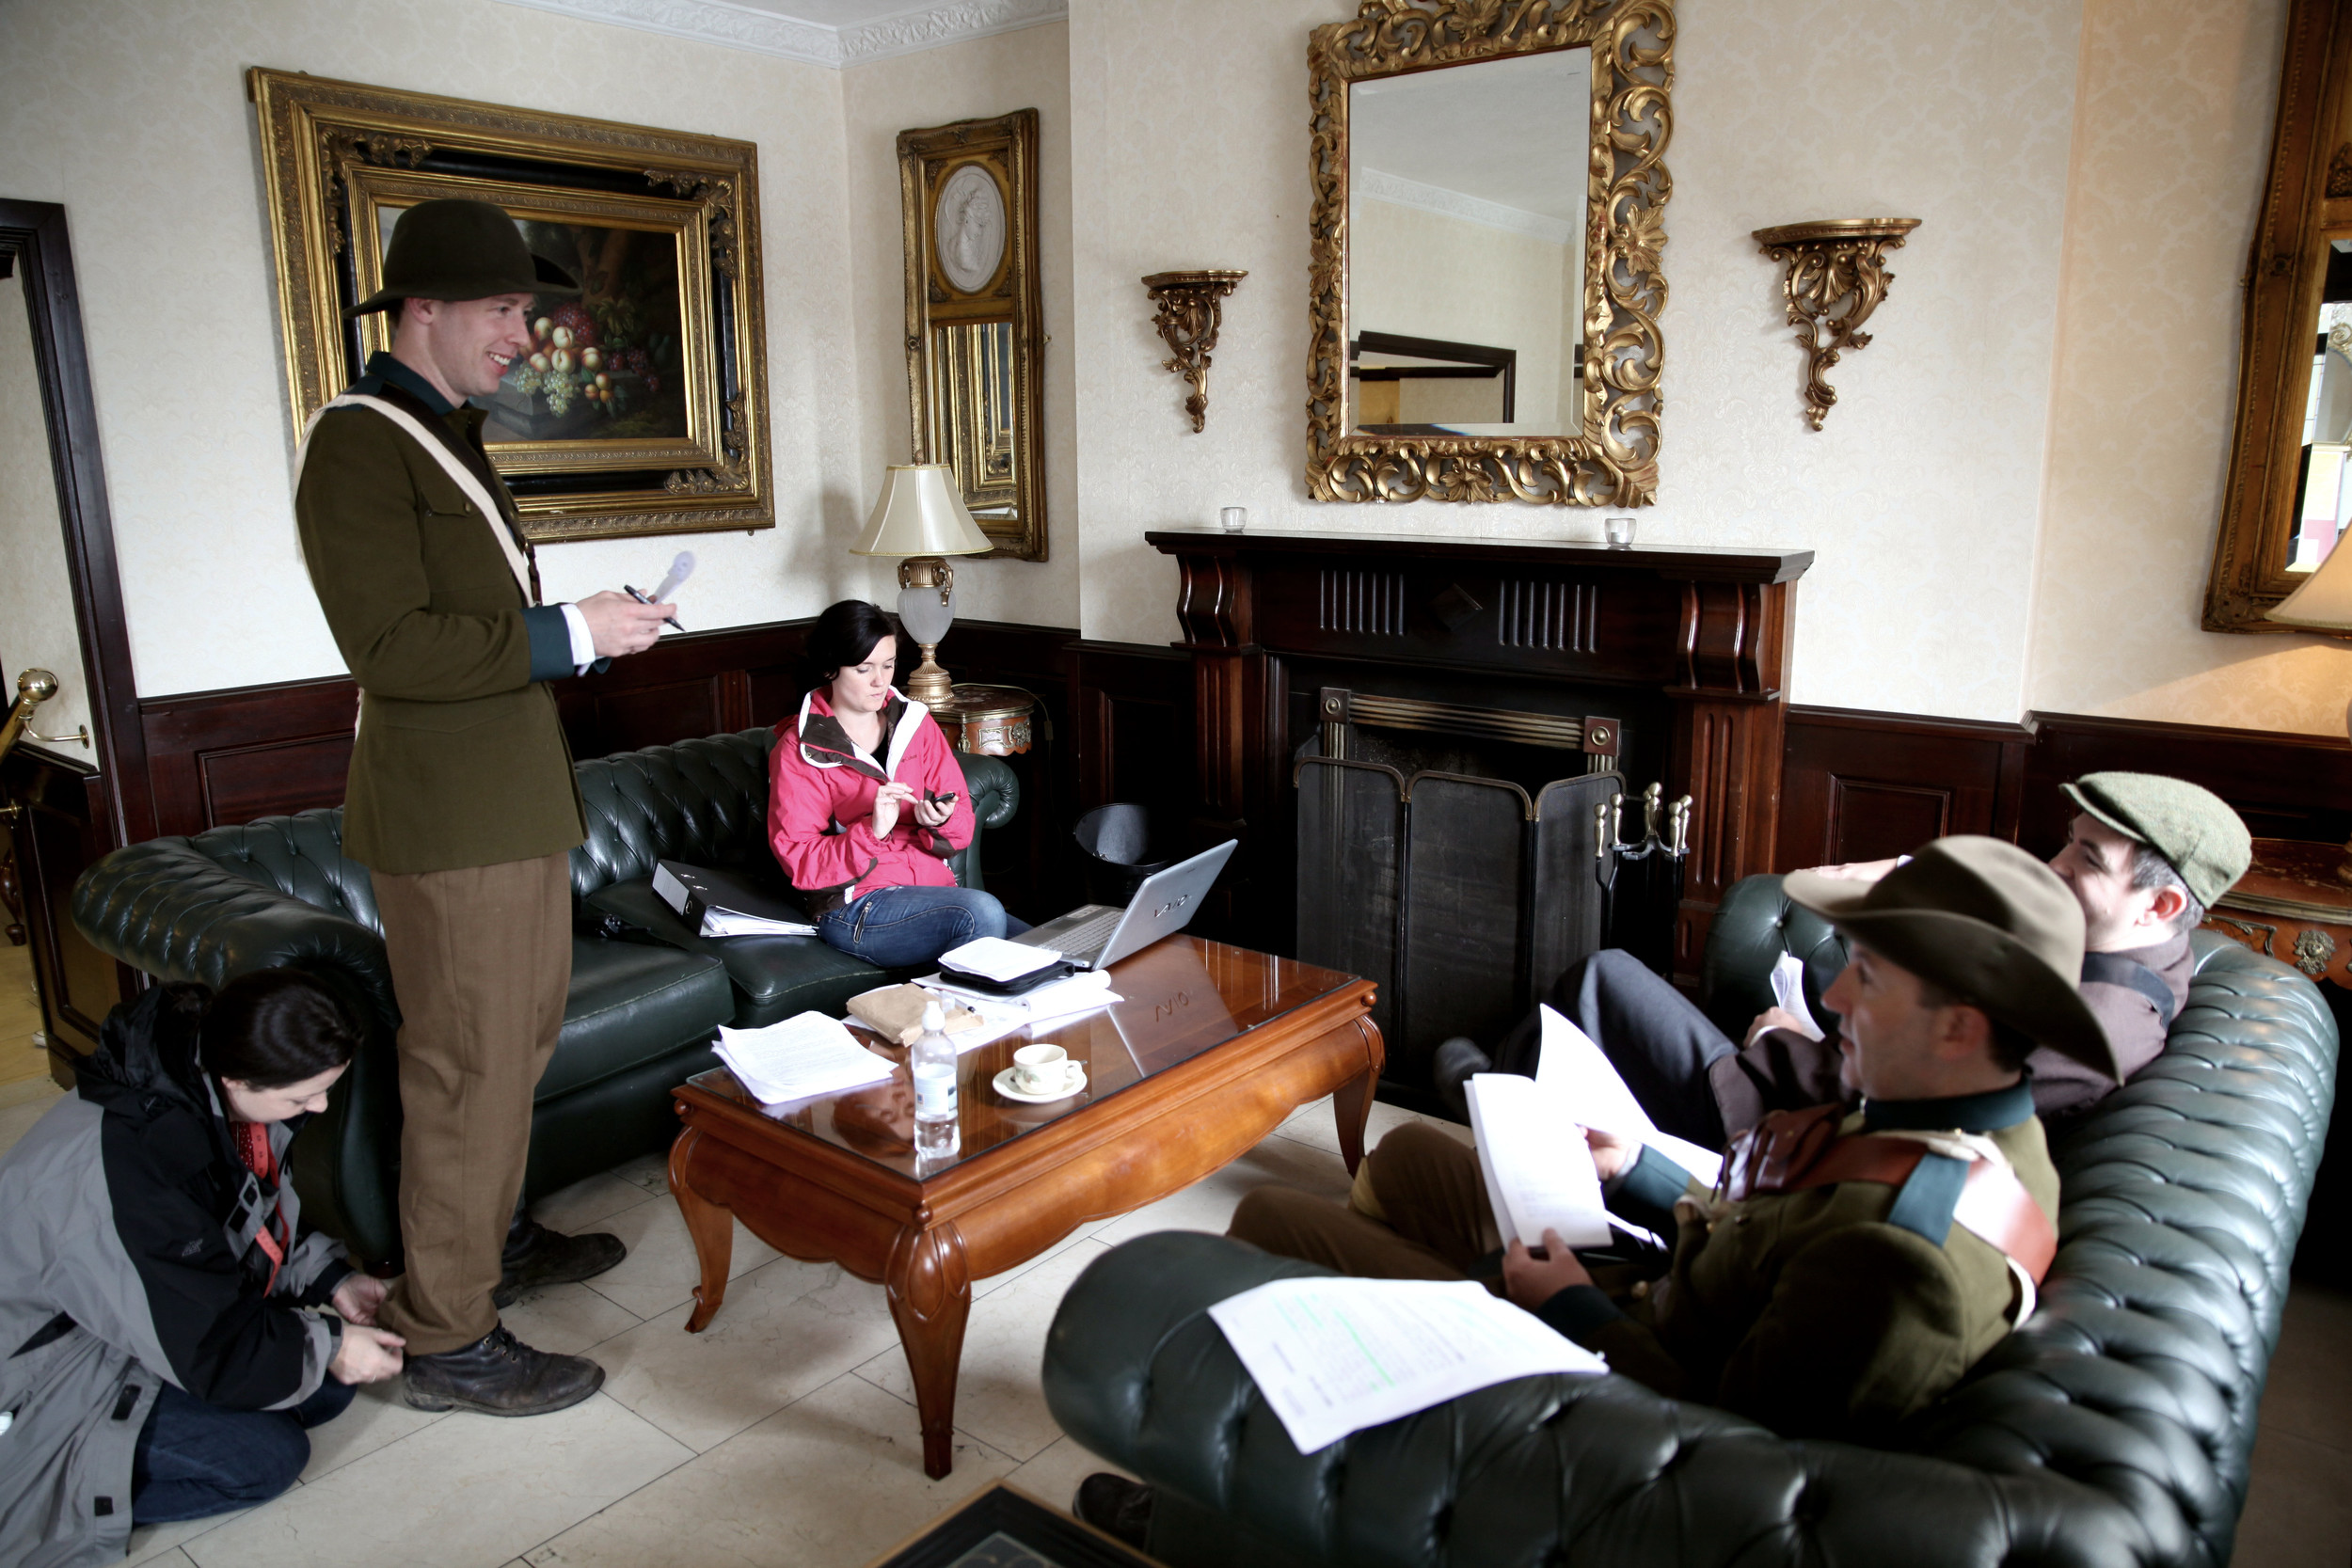 Production Manager Rebecca O'Malley and Irish Volunteers Seamus Hughes, Malachy McKenna and Cillian O'Donnachadha relax and learn their lines during a break in filming.